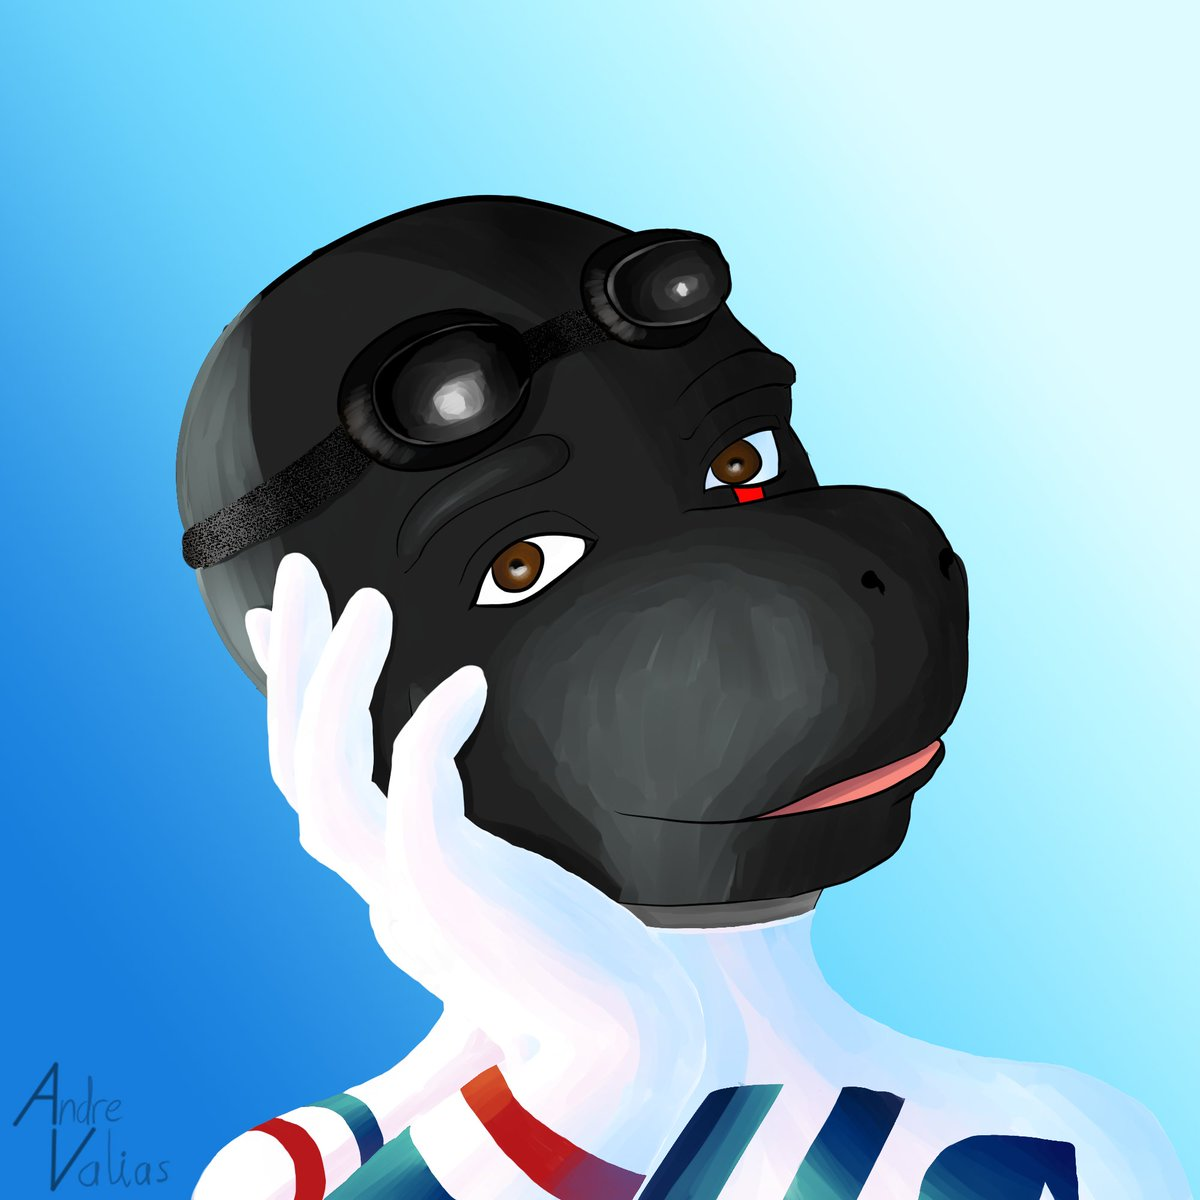 I finished #digitalpainting the icon for my Auricom pilot, for a project with @Fluxyshark ! He's ready to race. #Wipeout #digitalart #art #CLIPSTUDIOPAINT #furryart #scalie #salamander #OC #furry https://t.co/9DlADsE0yZ